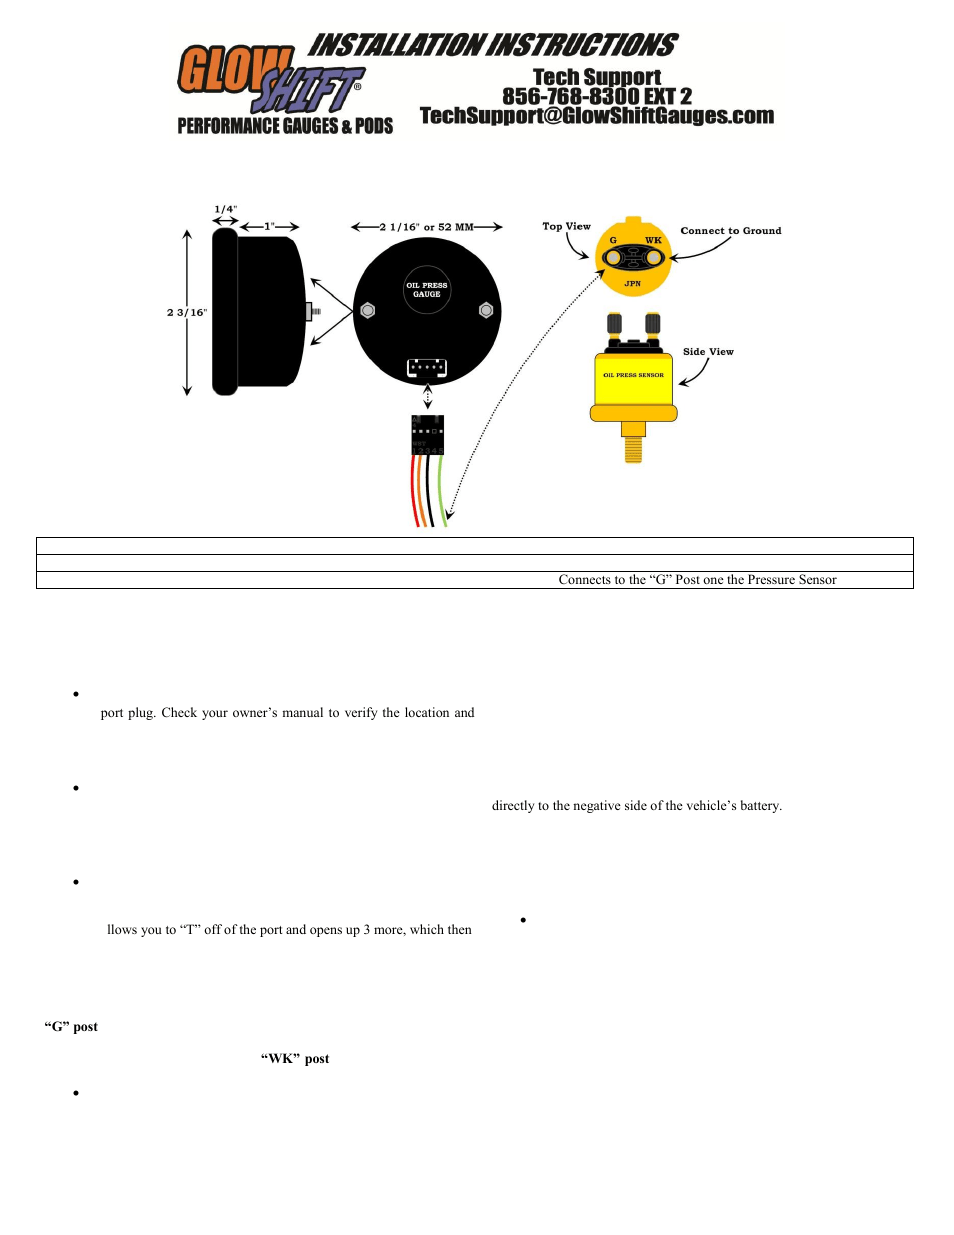 medium resolution of glowshift digital series bar oil pressure gauge user manual 3 pages also for